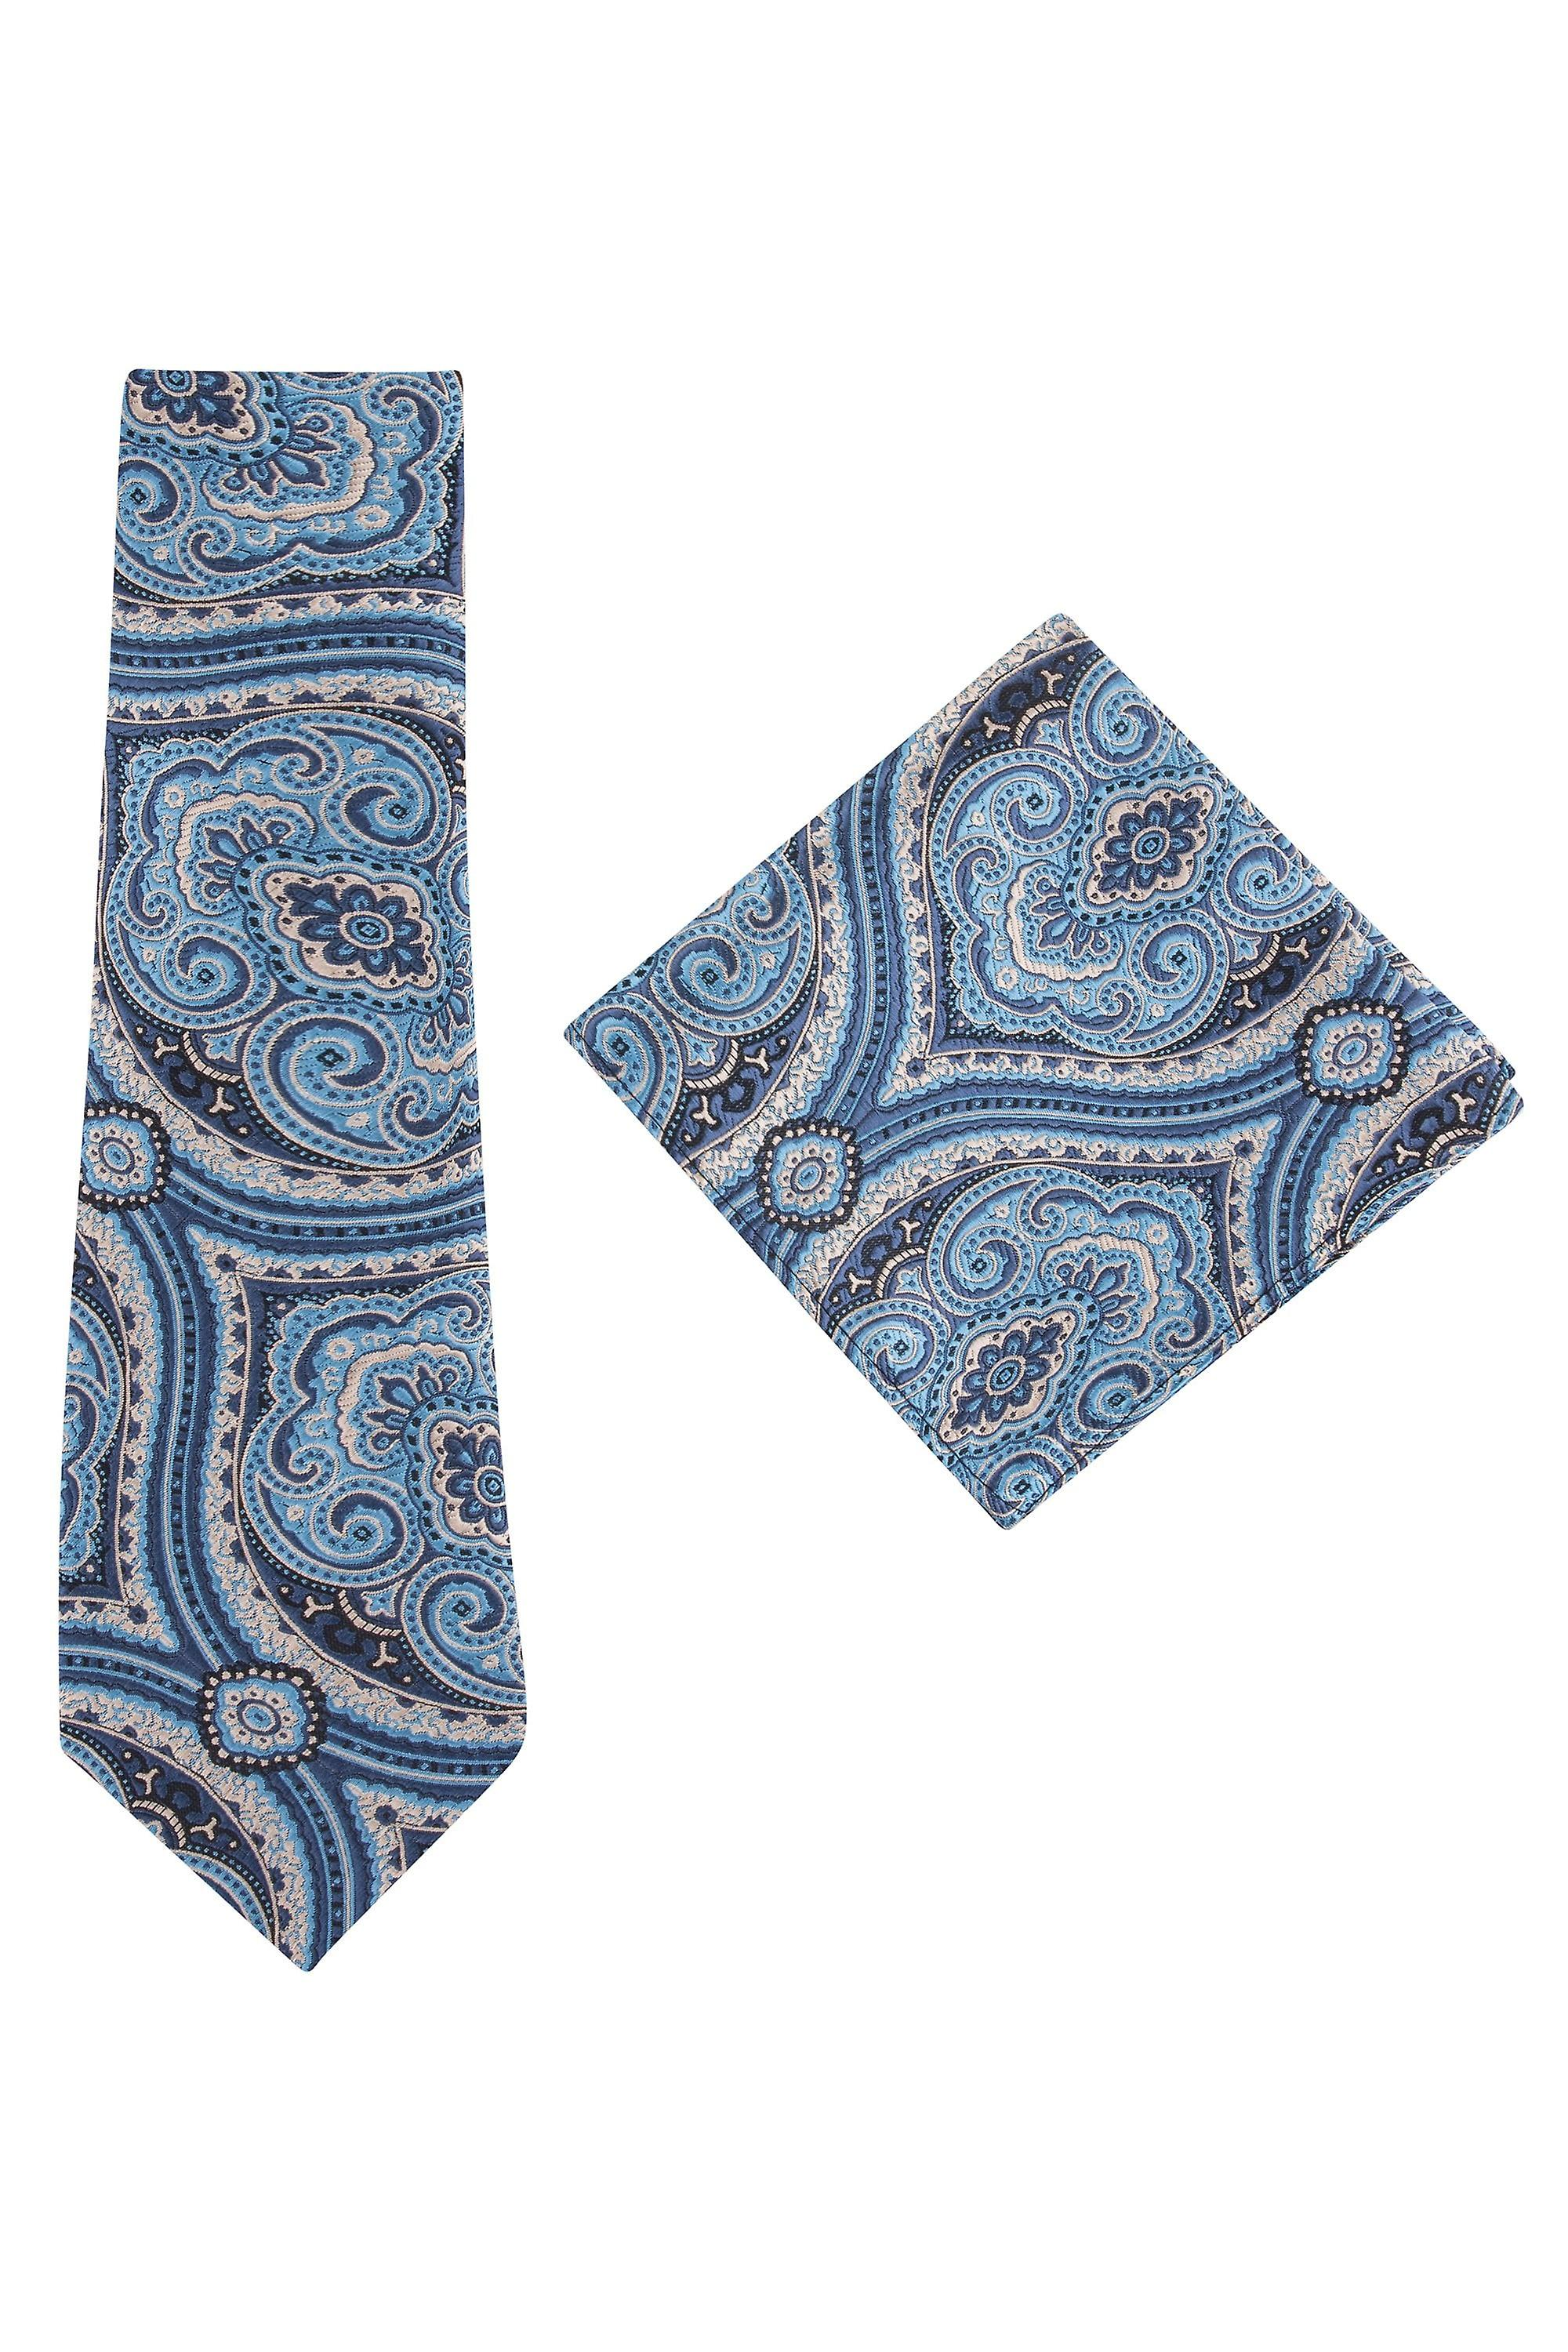 JSS Blue Paisley Tie And Pocket Square Set